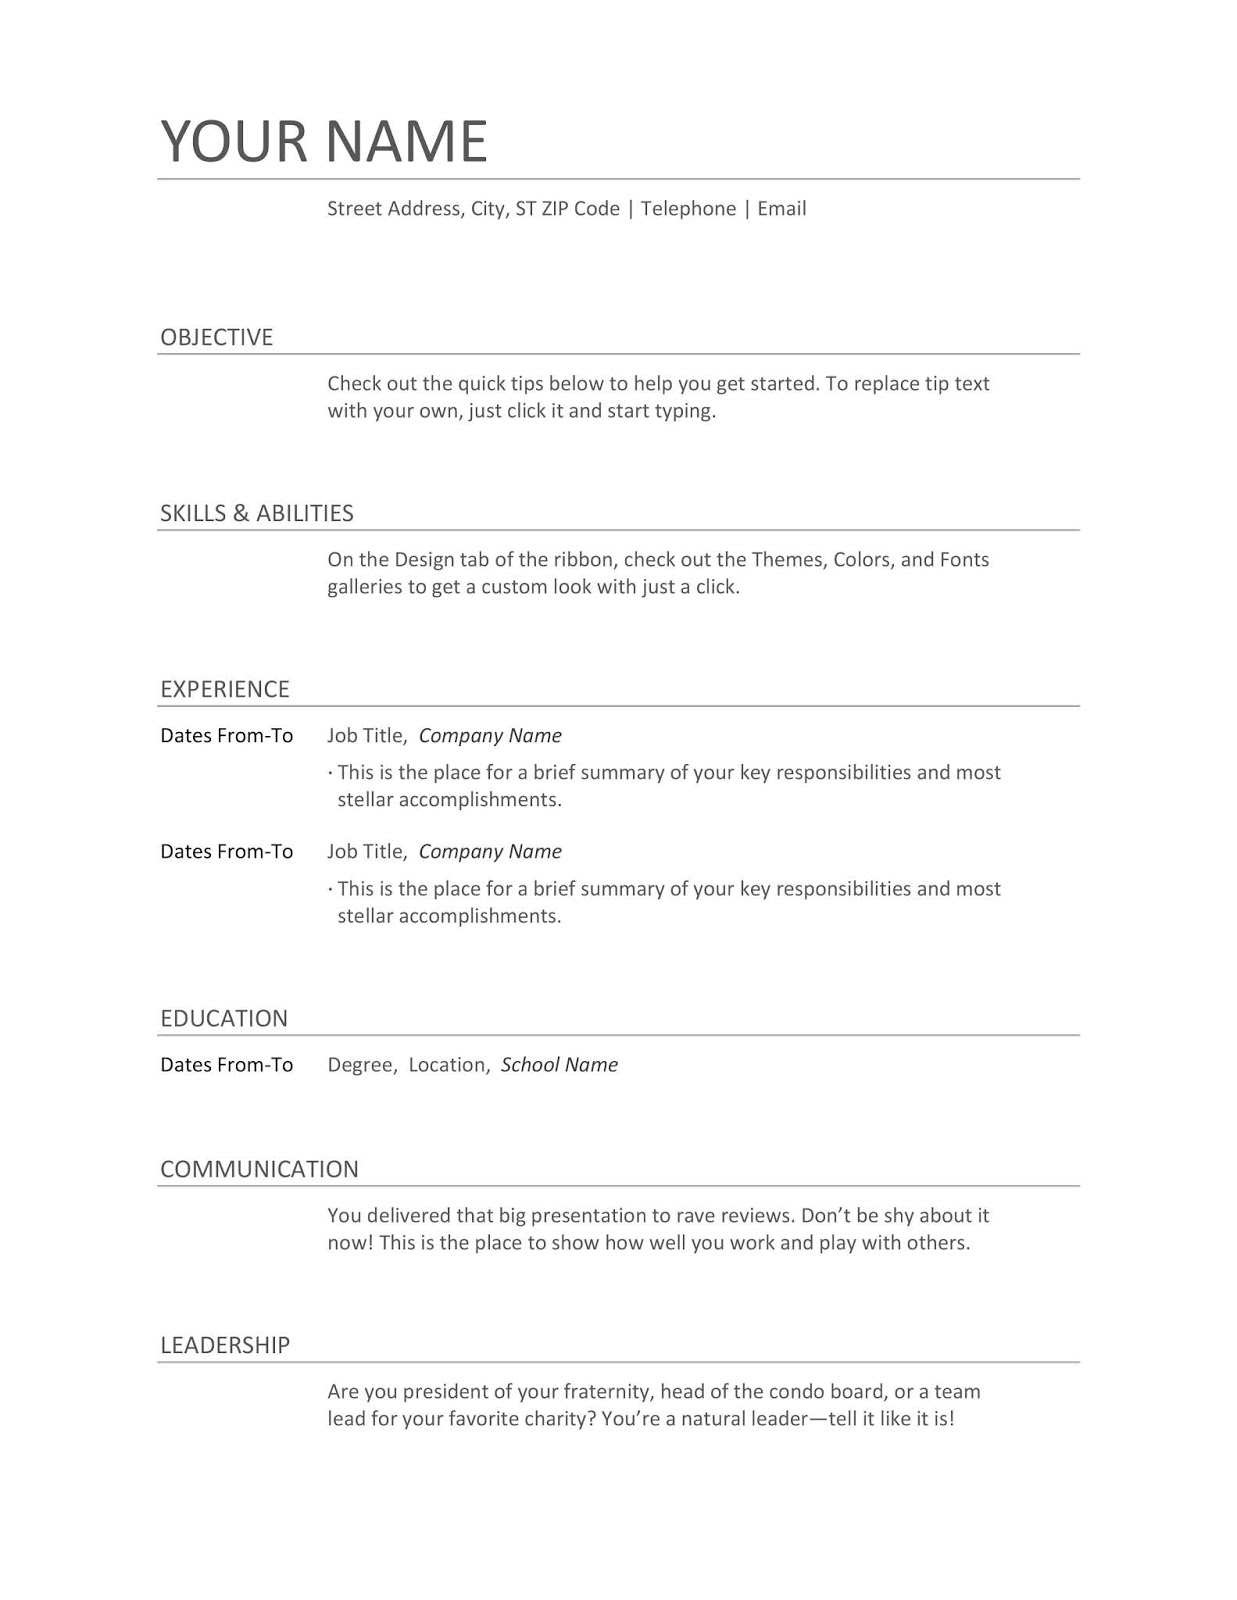 name of resume file 2019 name of resume examples name of resume meaning 2020 name of resume means name of resume font name of resume paper name of employer resume name in header of resume other name of resume different name of resume similar name of resume latest name of resume alternate name of resume hindi name of resume good